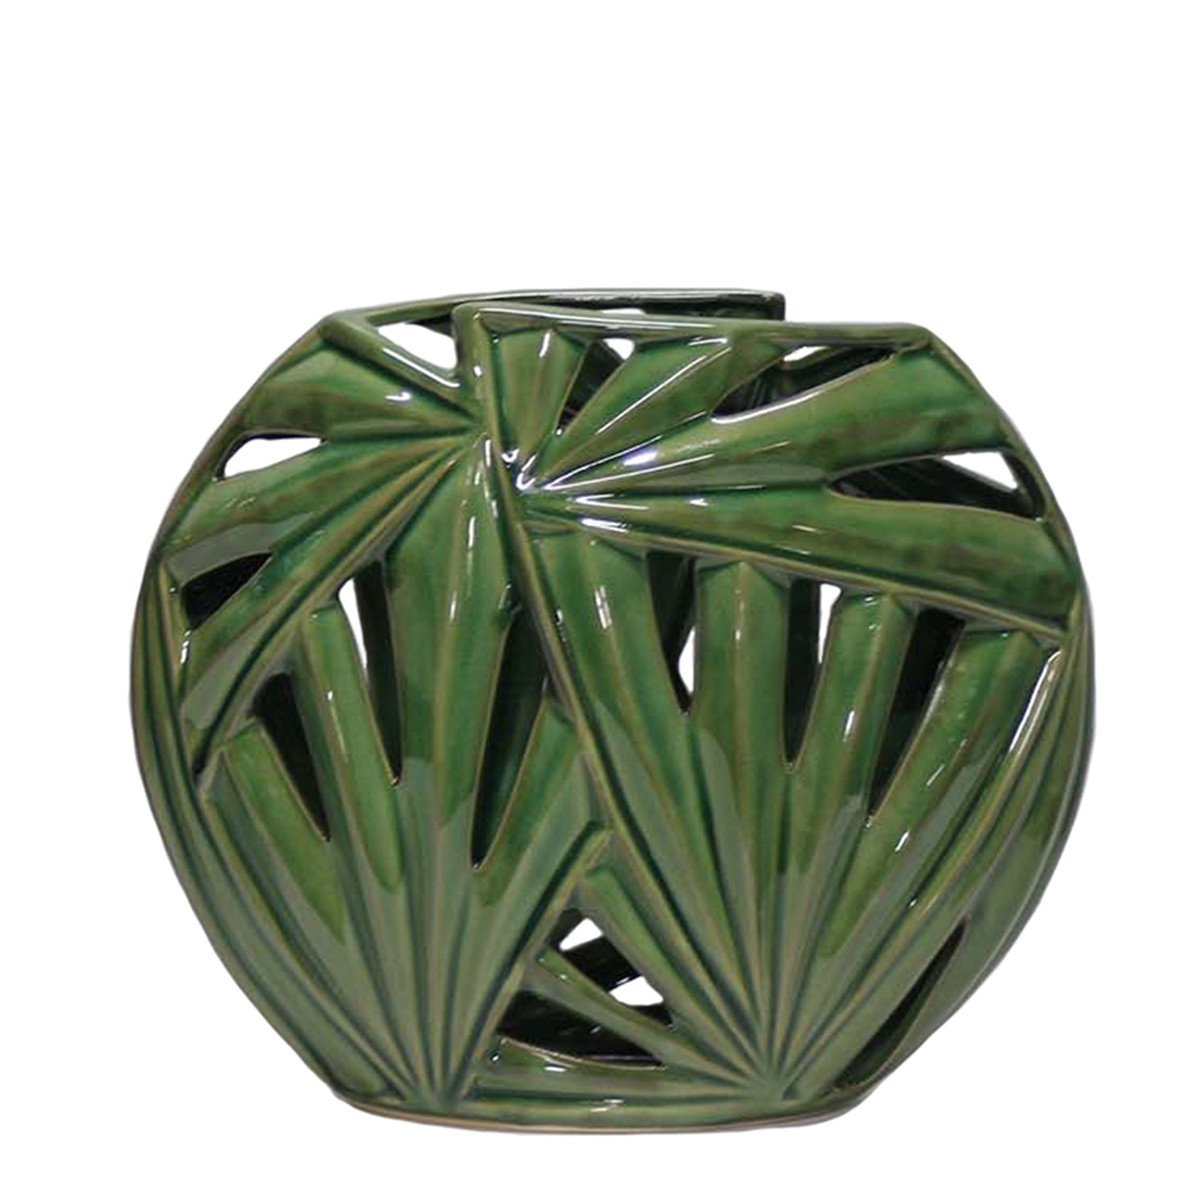 10.5 cylinder vase of green palm leaf vase 10 5 sagebrook home with 13660 02 13660 02